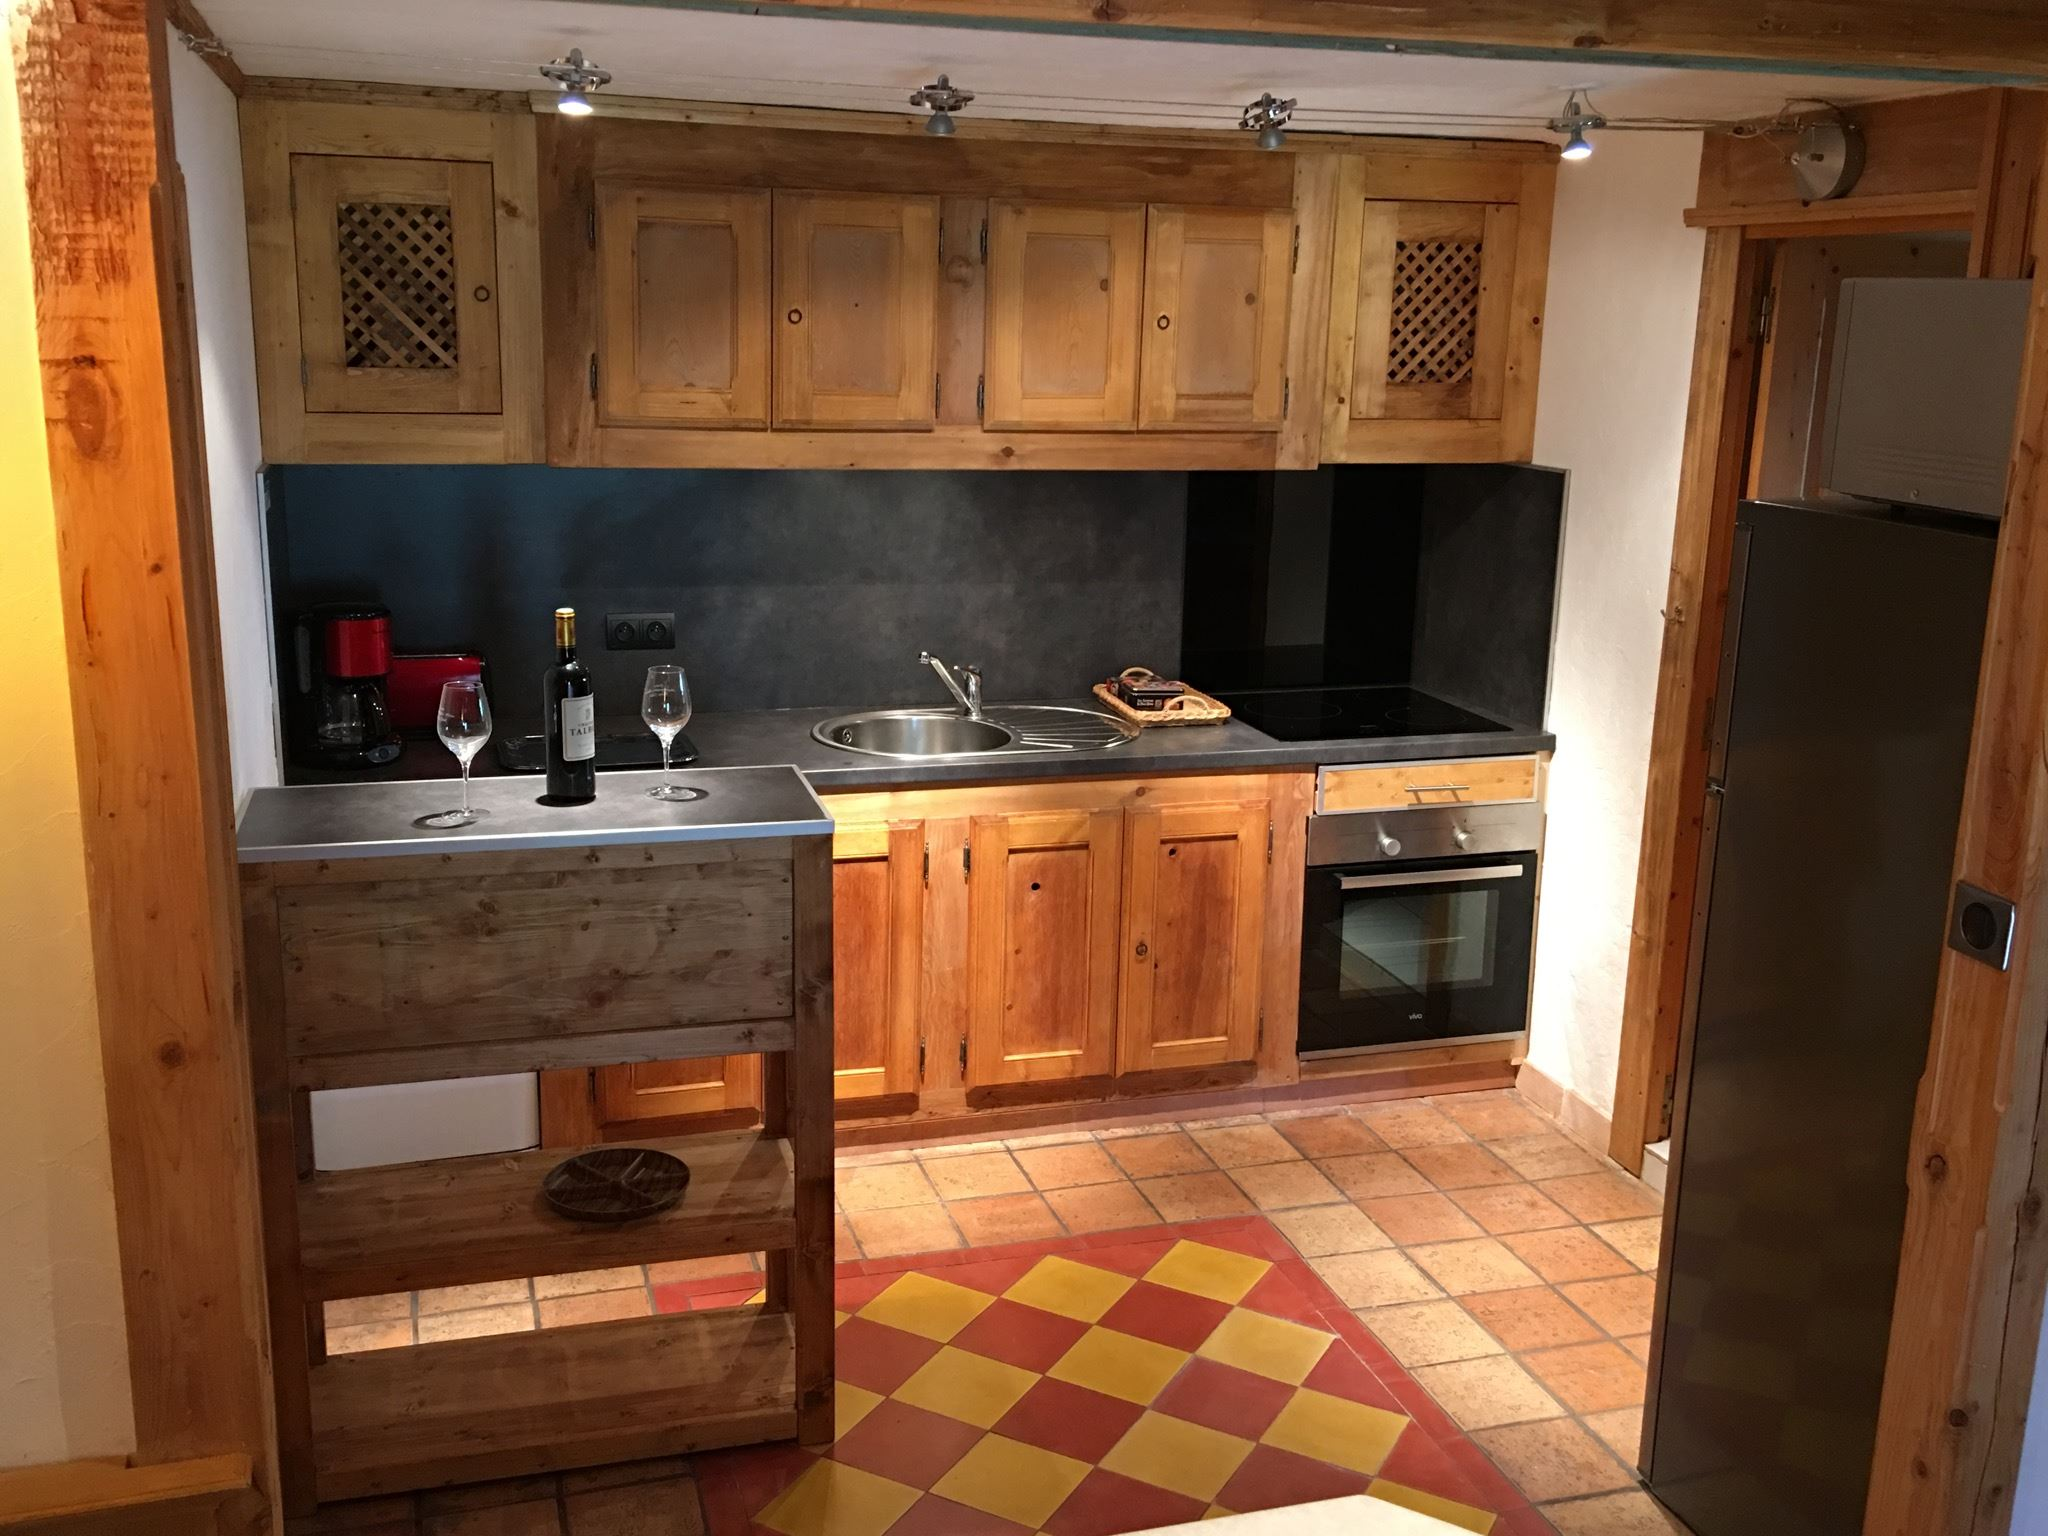 CHALET EDELWEISS: Apartment for 5 people